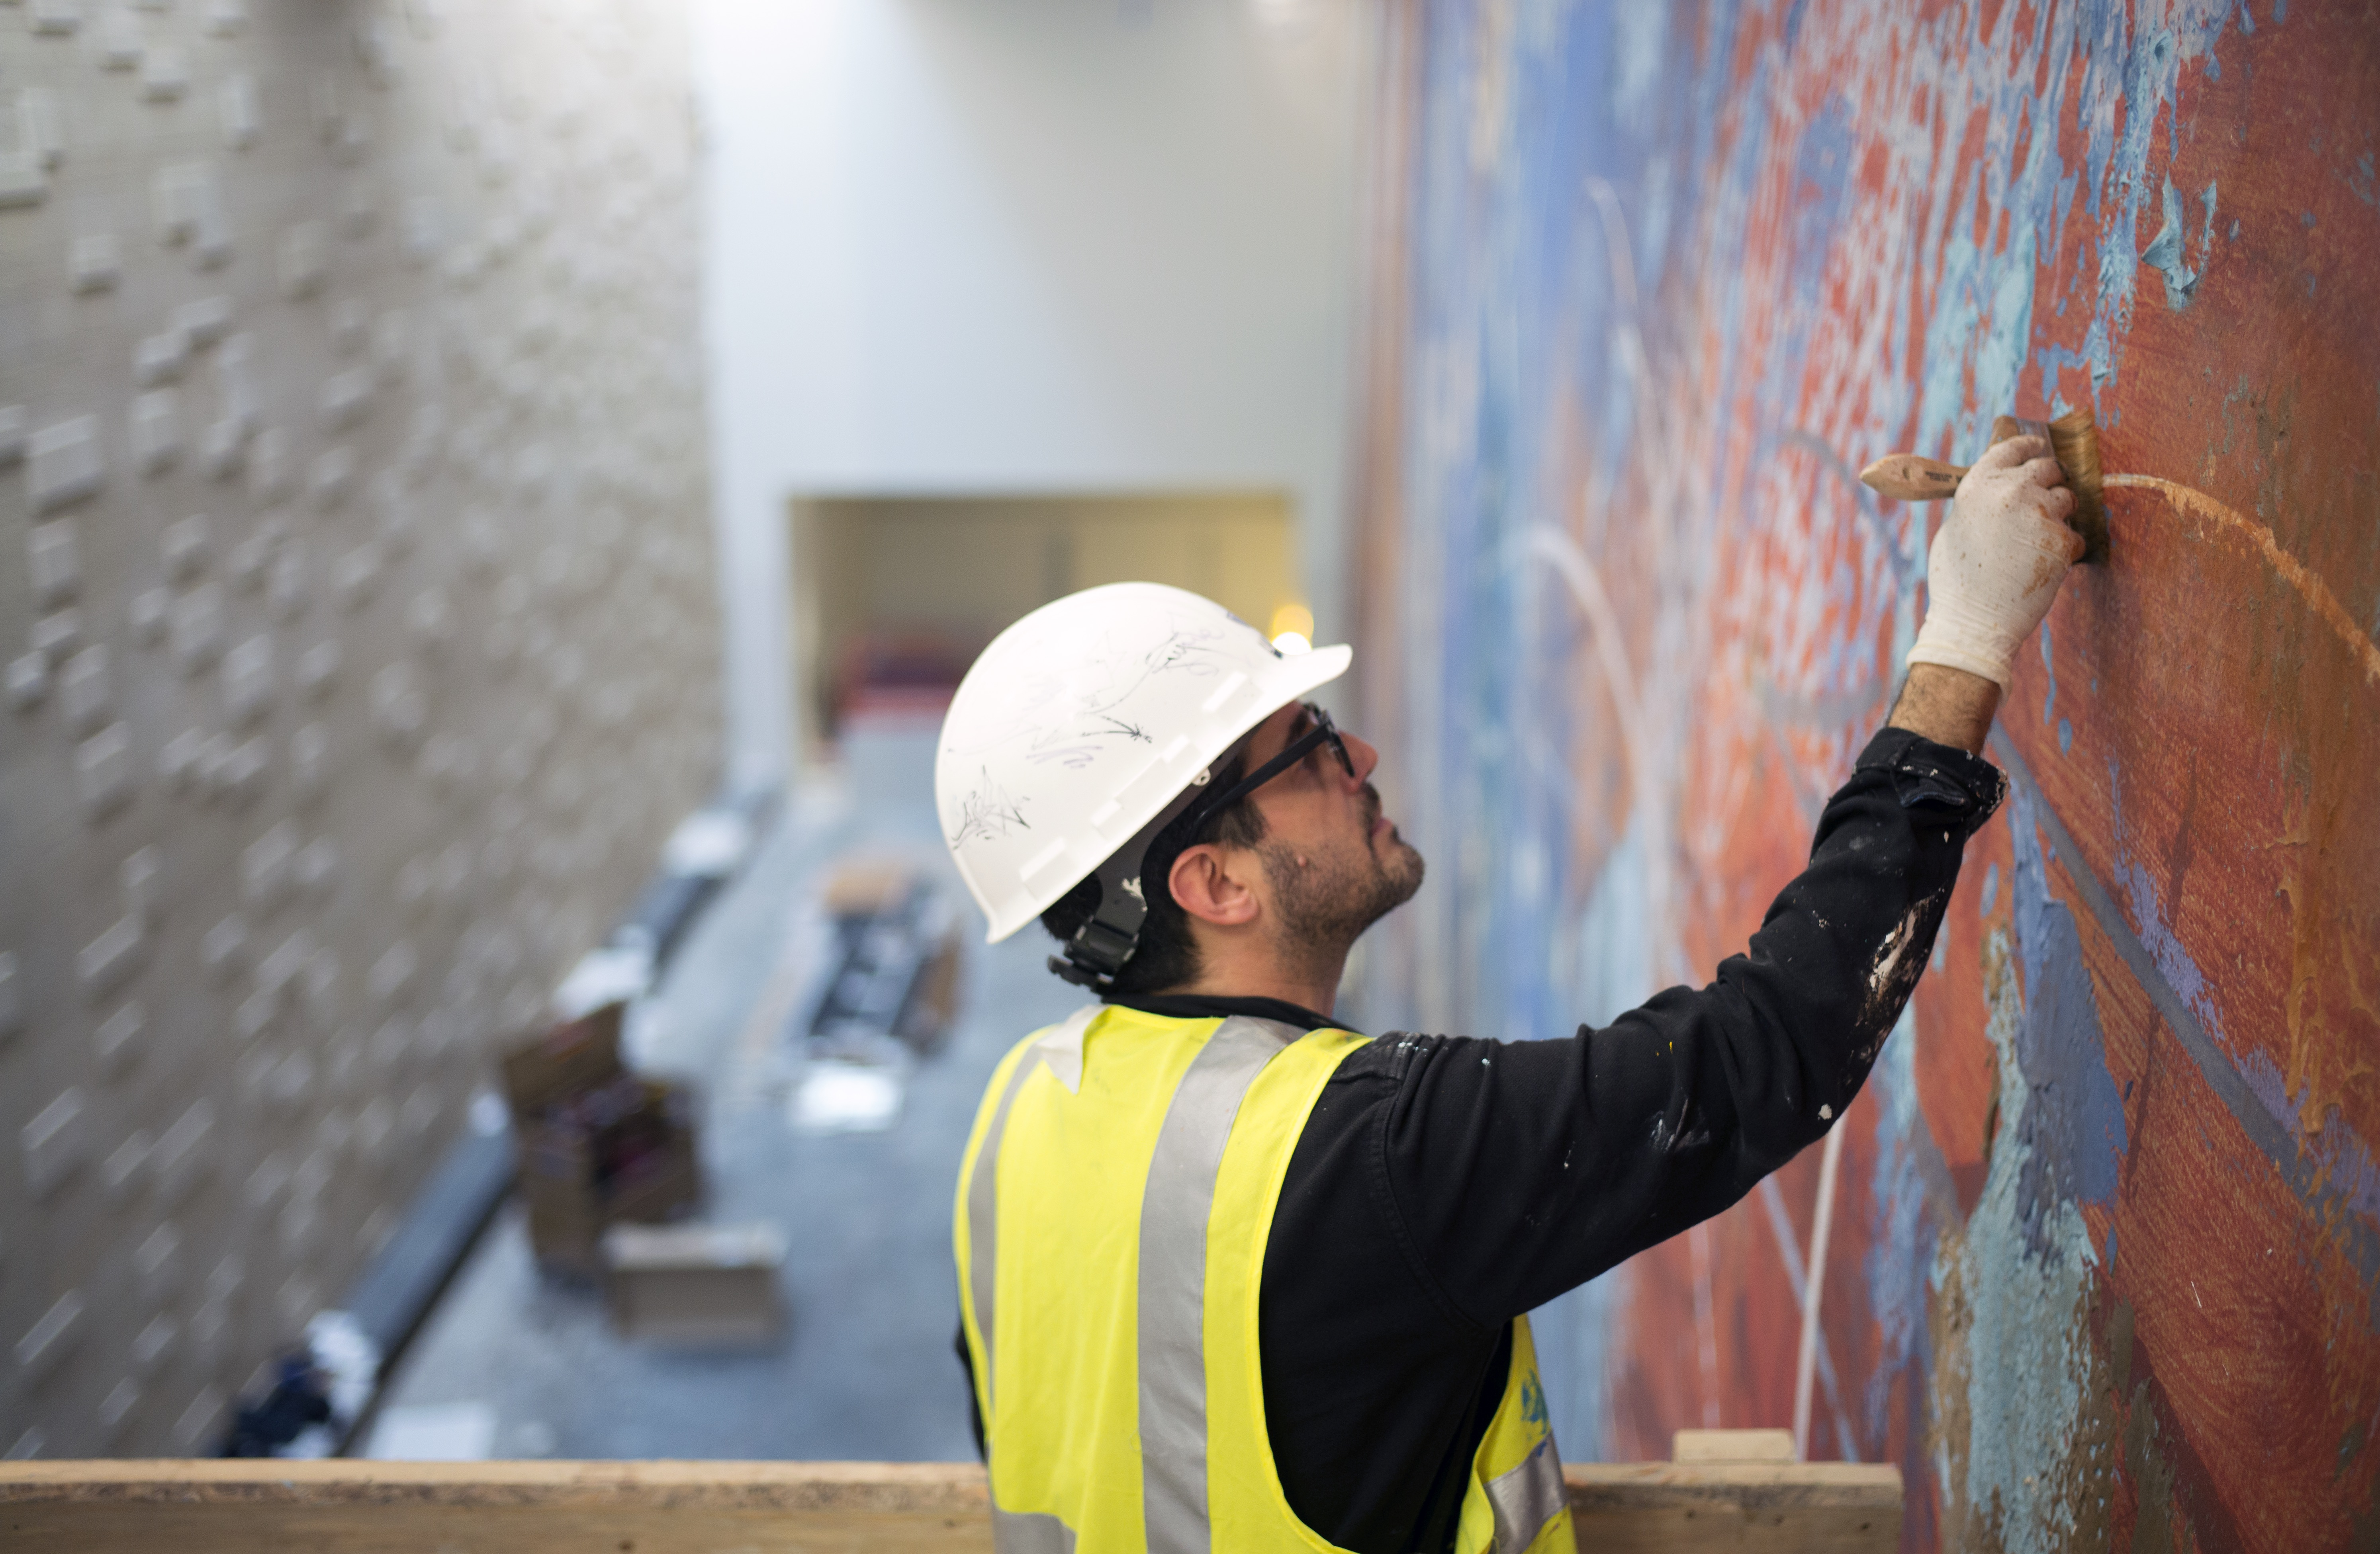 A man in hardhat and yellow safety vest working on painting on scaffolding